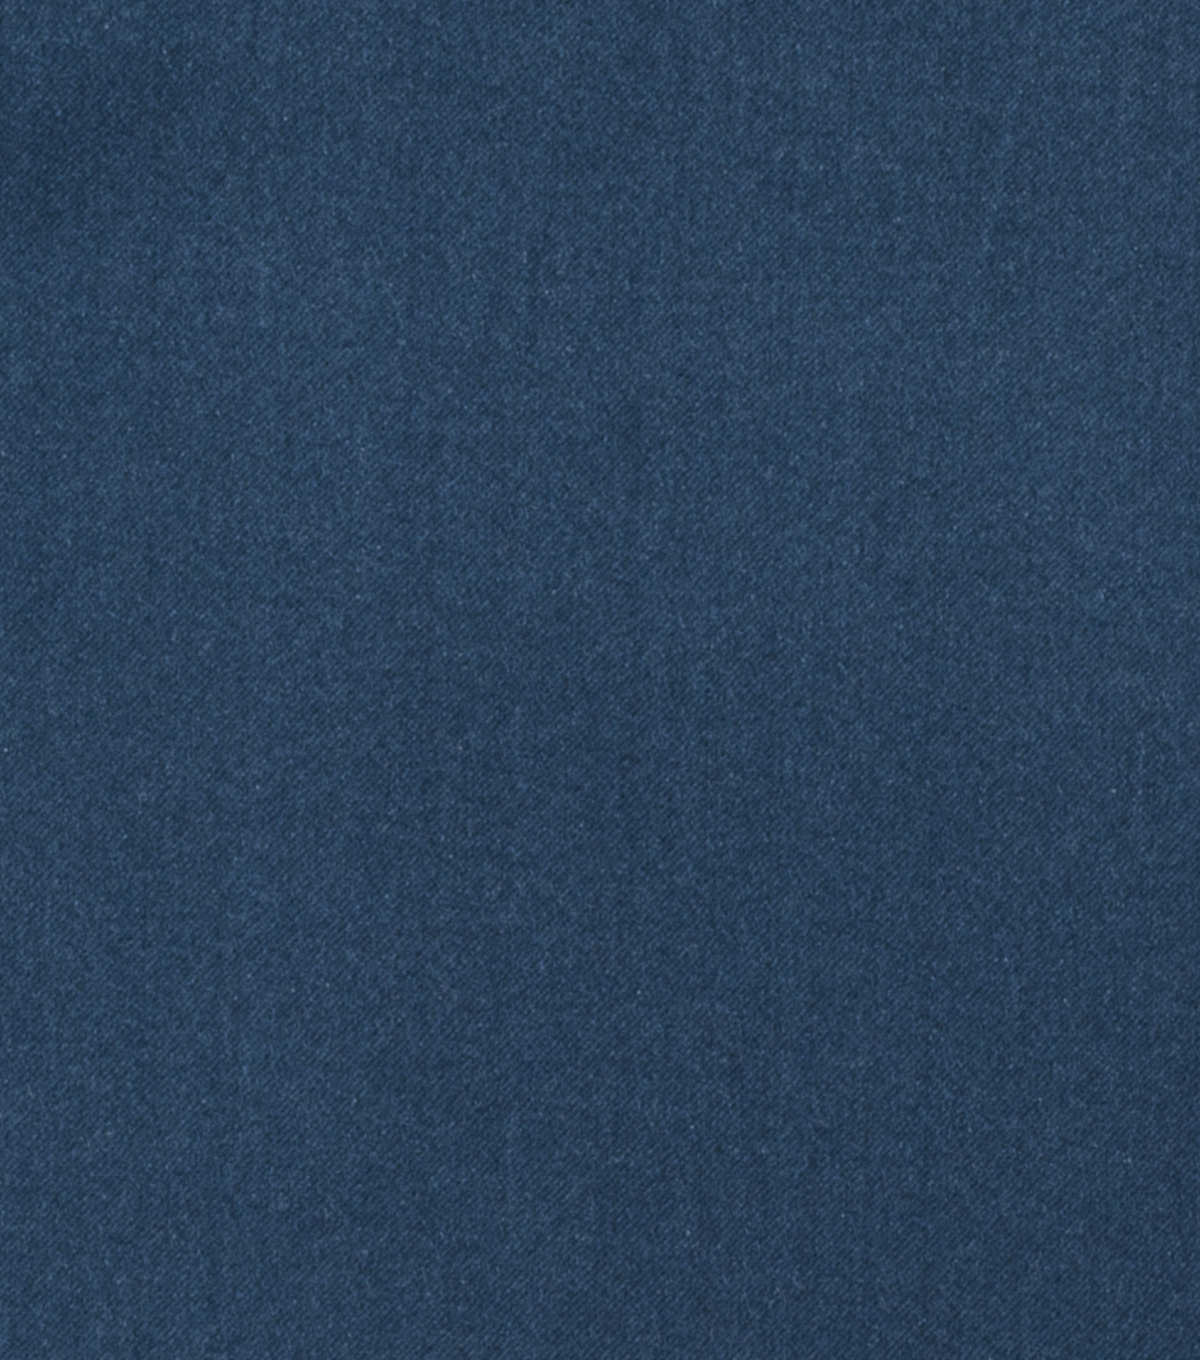 Home Decor 8\u0022x8\u0022 Fabric Swatch-Signature Series Couture Satin Marine